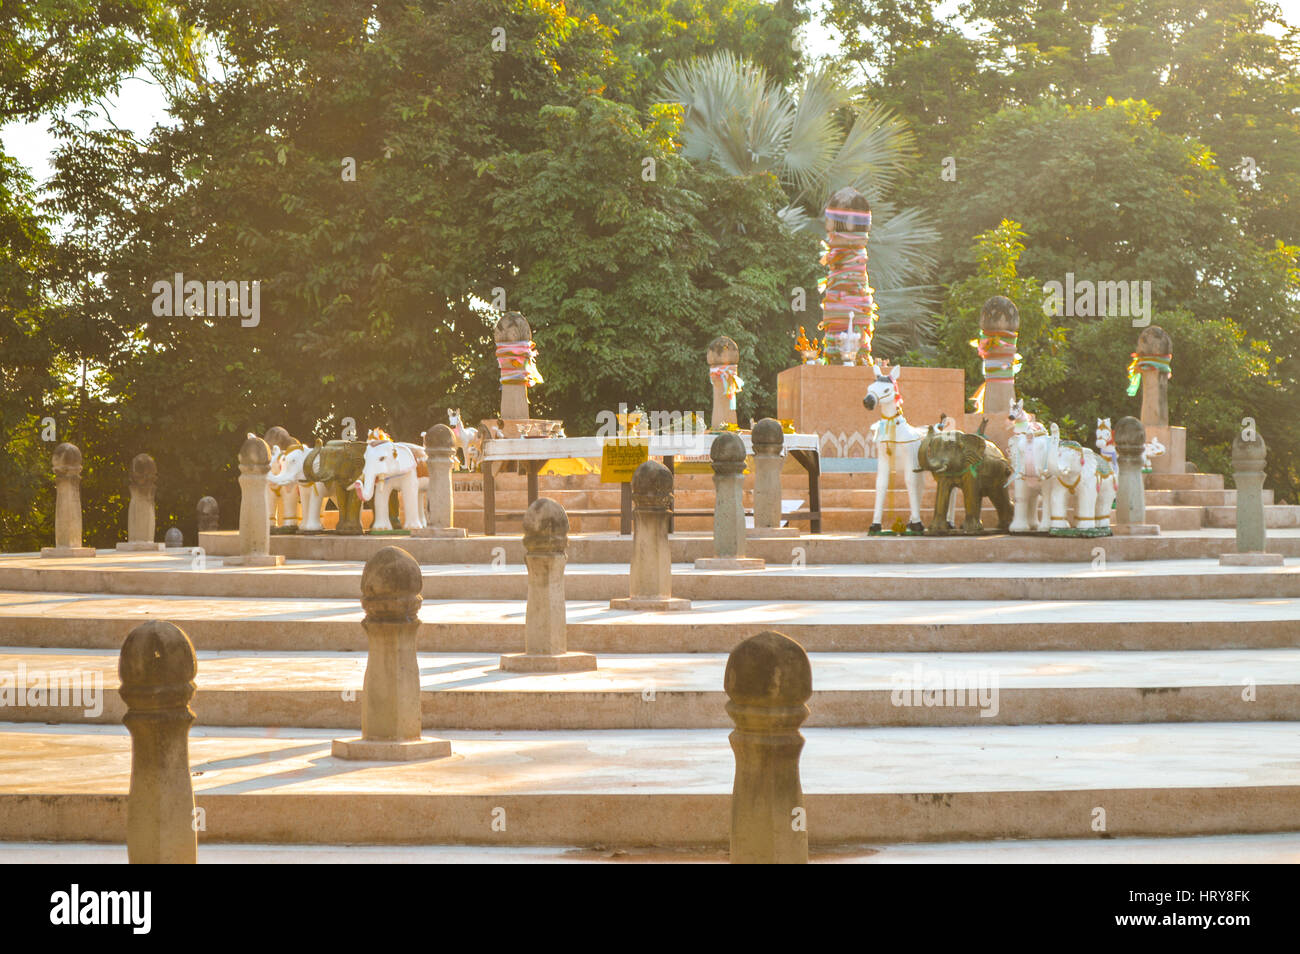 Chiang Rai, Thailand - October 1, 2016: Wat Phra That Doi Chom Thong. Sadu Mueang, the Navel or Omphalos of the - Stock Image